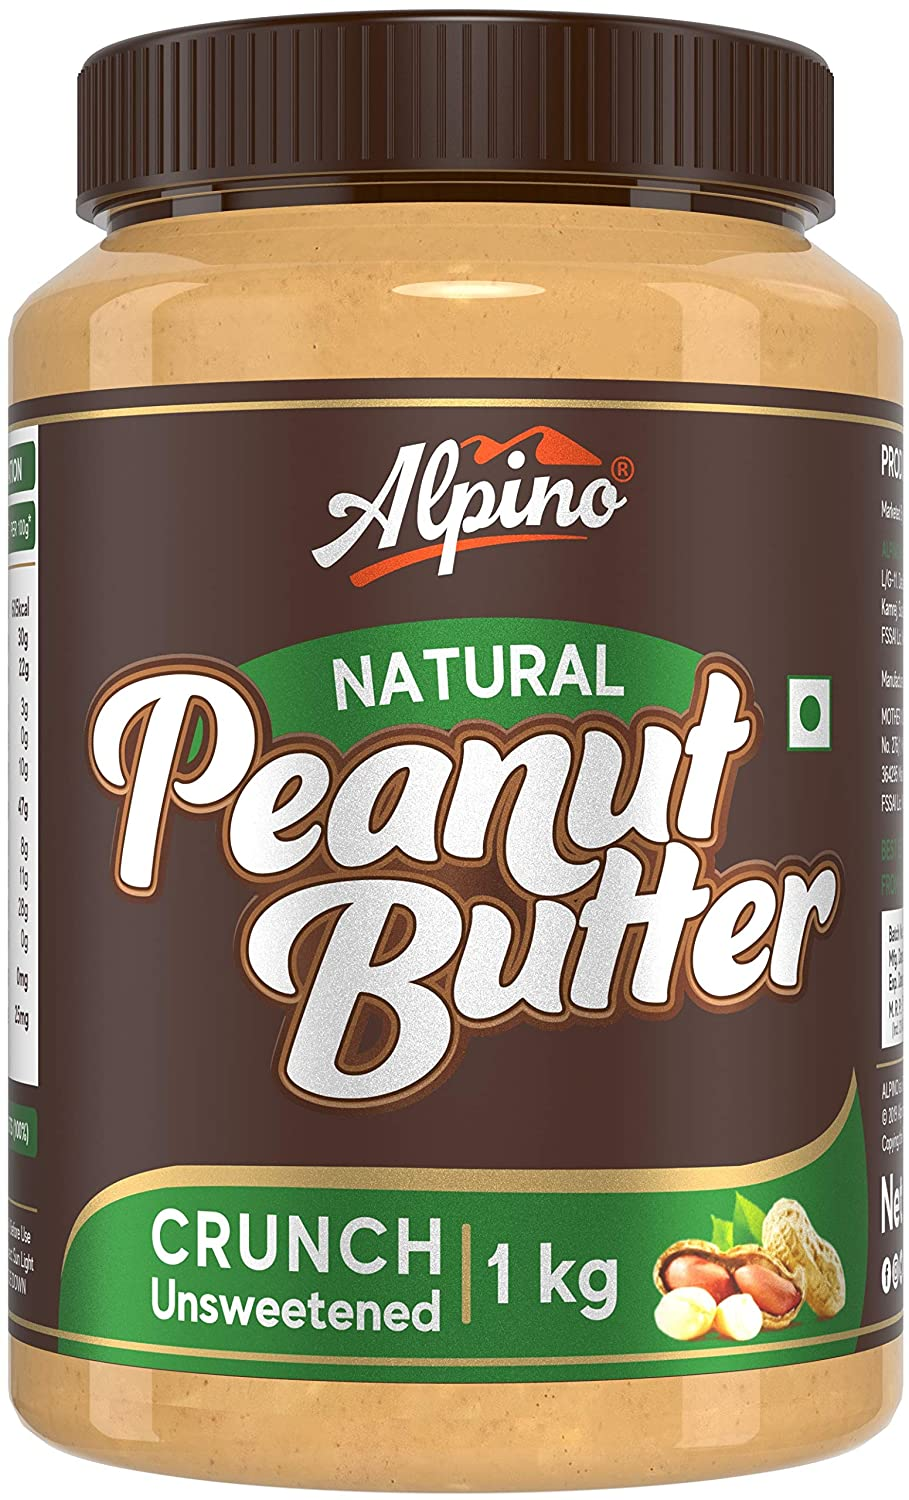 Alpino Natural Peanut Butter Crunch 1 KG $5.25 Coupon